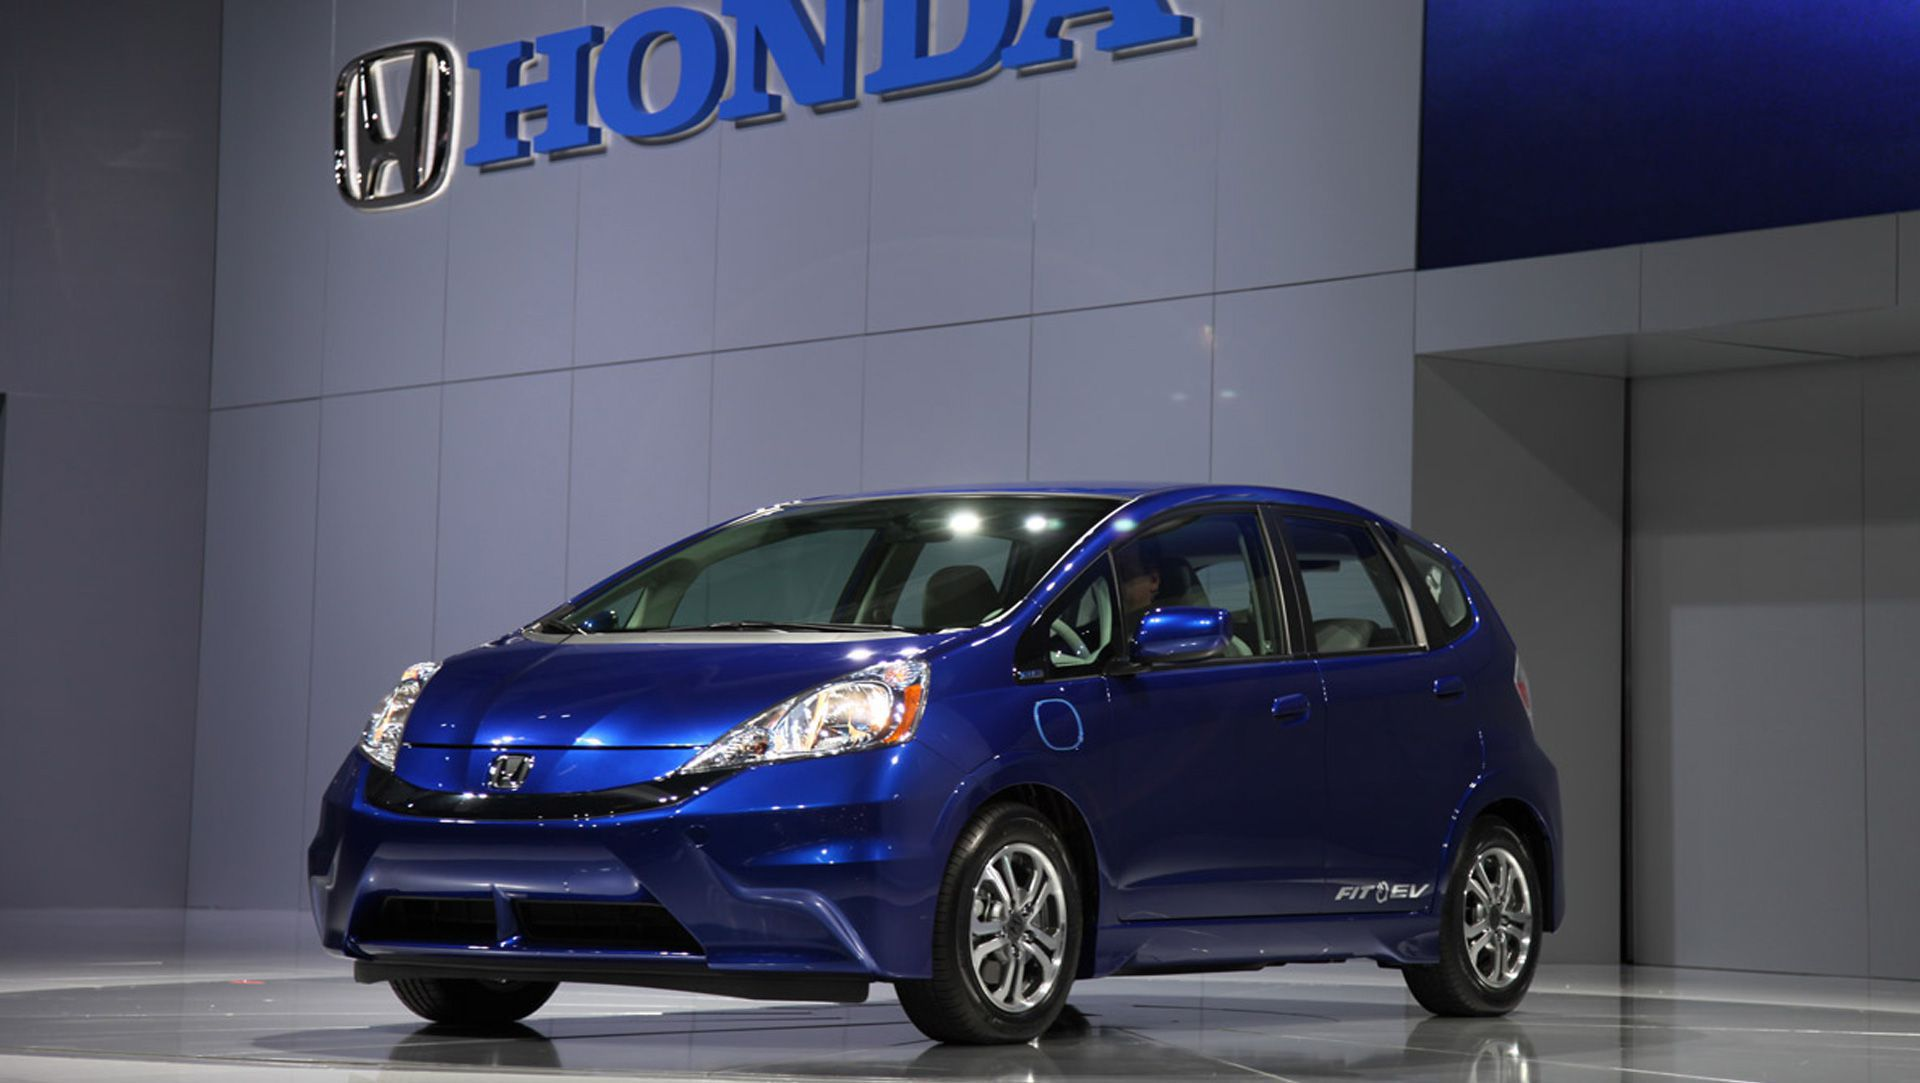 2013 Honda Fit EV Rated By The EPA At 118 MPGe, Highest Fuel Efficiency ...